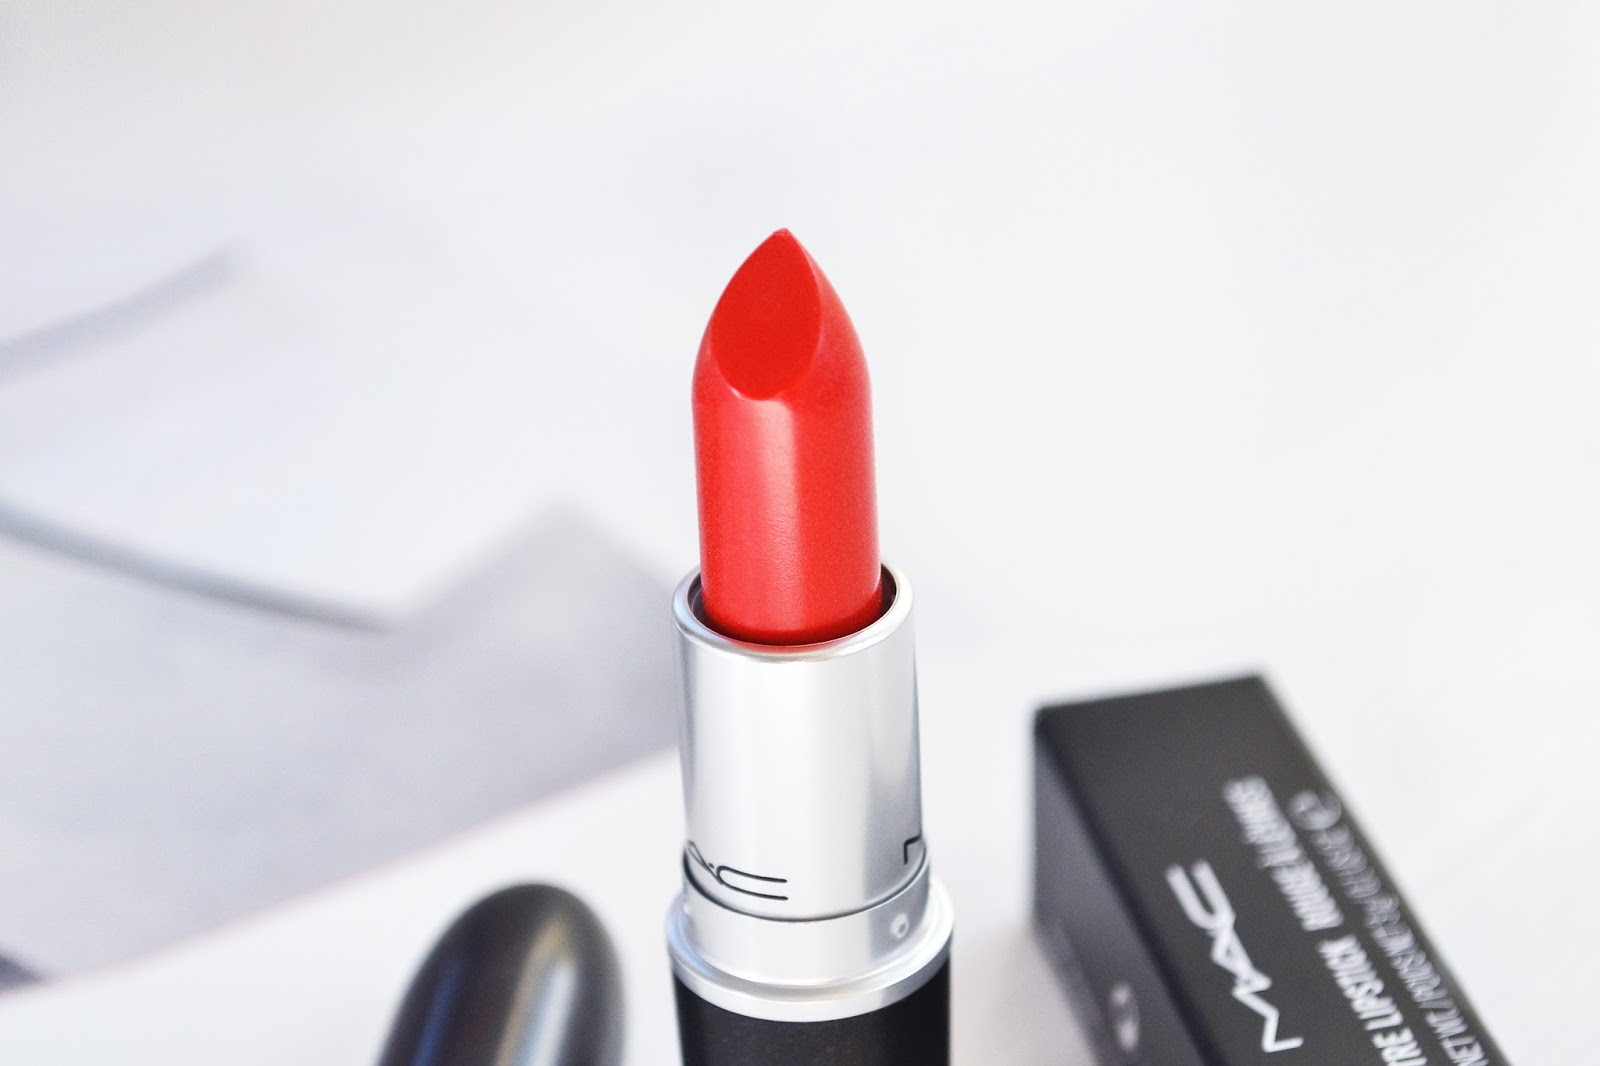 5 Alarm is a beautiful sheer red lipstick from MAC